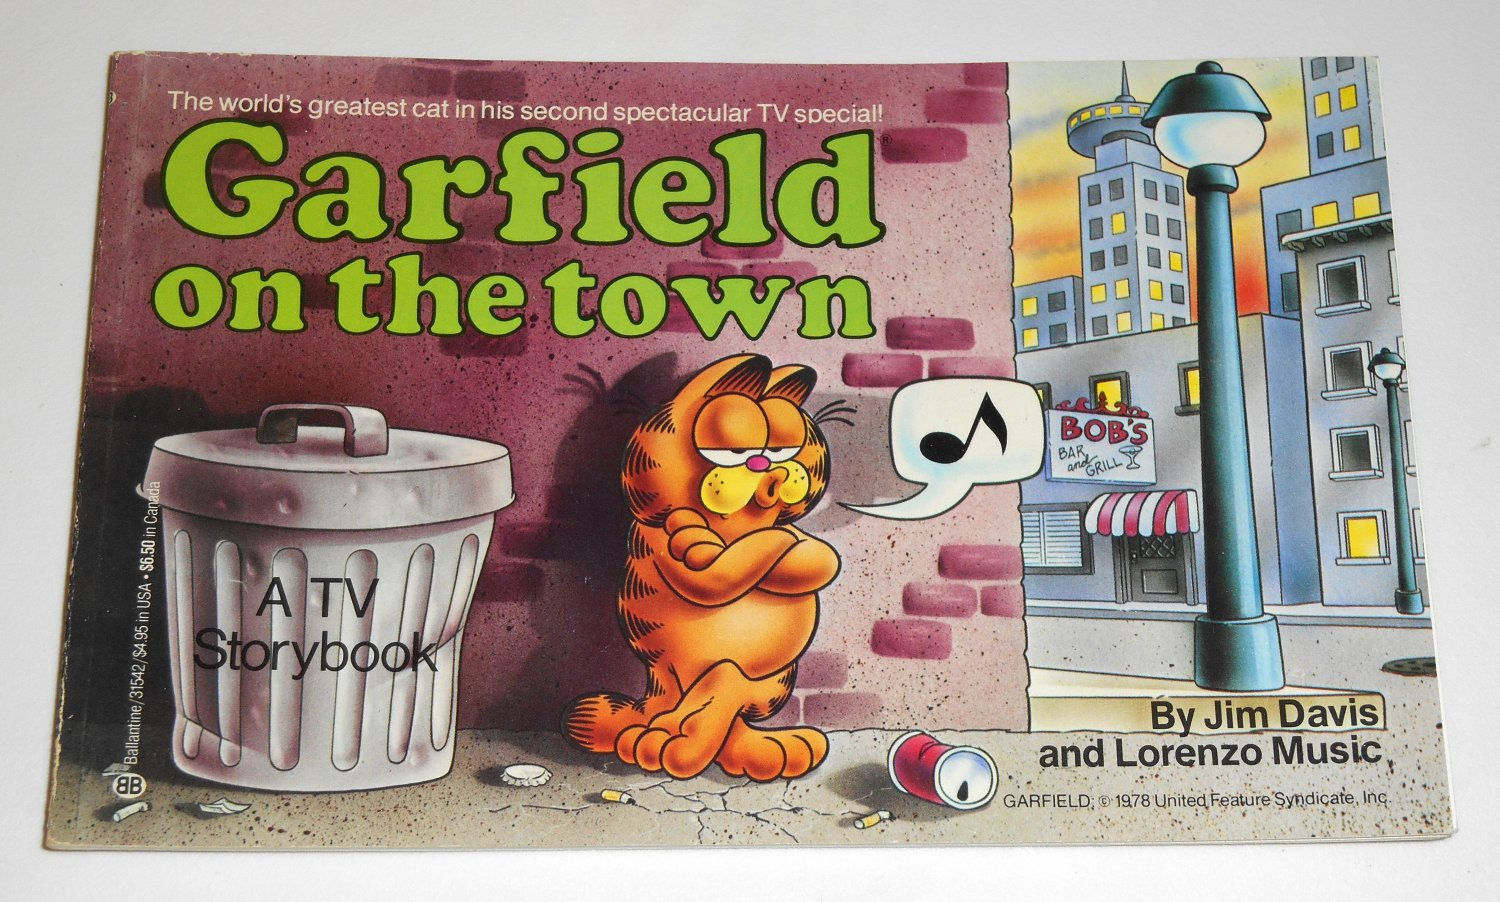 Garfield On The Town 2nd Second TV Special Cat Paperback Book Soft Cover Odie PAWS Jim Davis